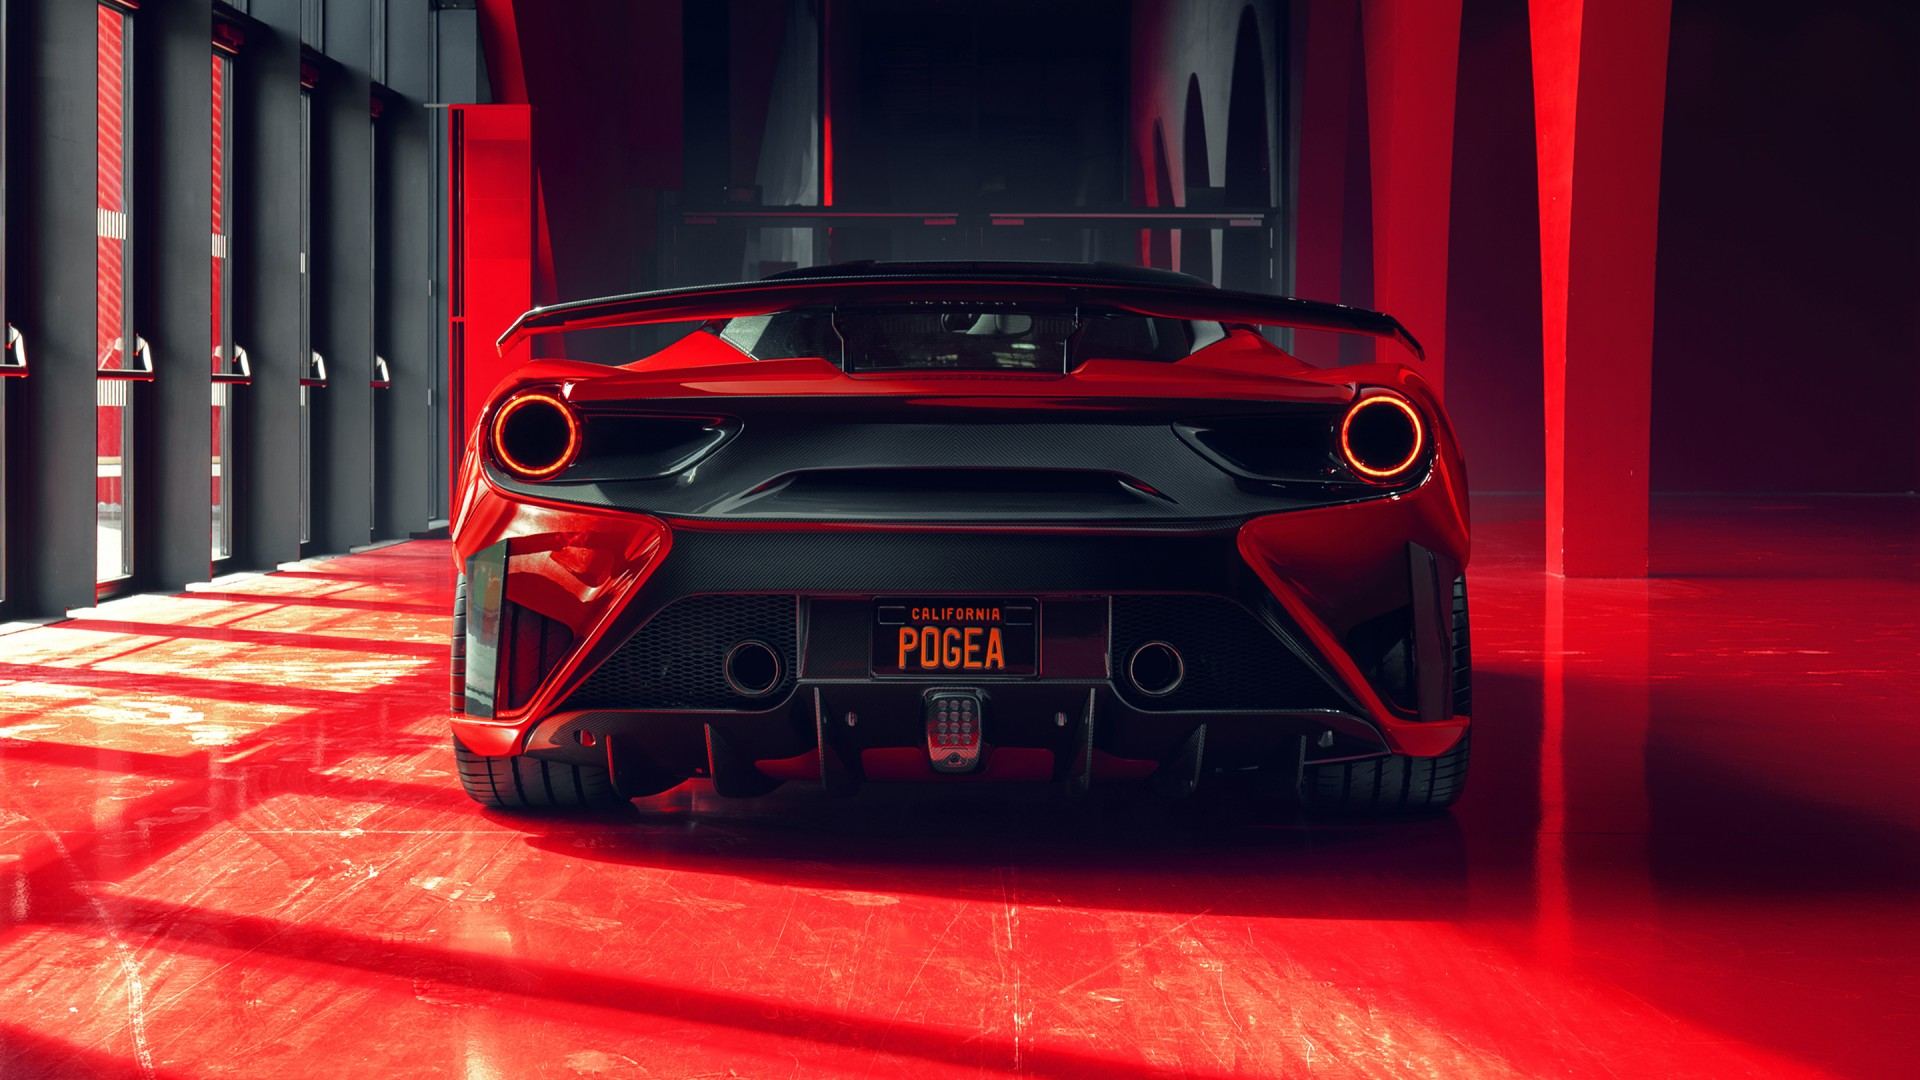 Hd Jaguar Car Wallpaper Download 2018 Pogea Racing Fplus Corsa Ferrari 488 Gtb 2 Wallpaper